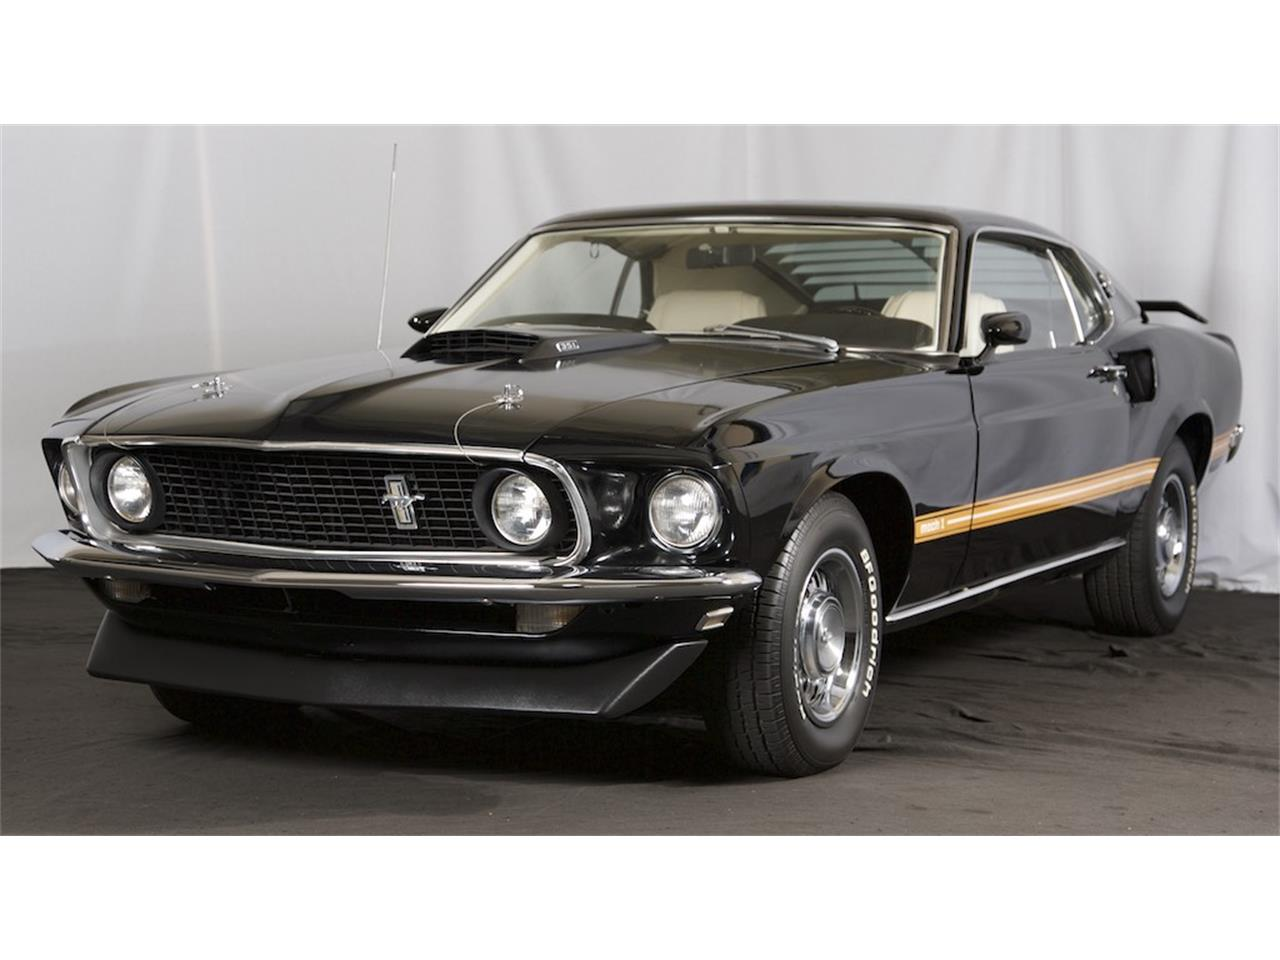 Large picture of 69 mustang mach 1 lahm